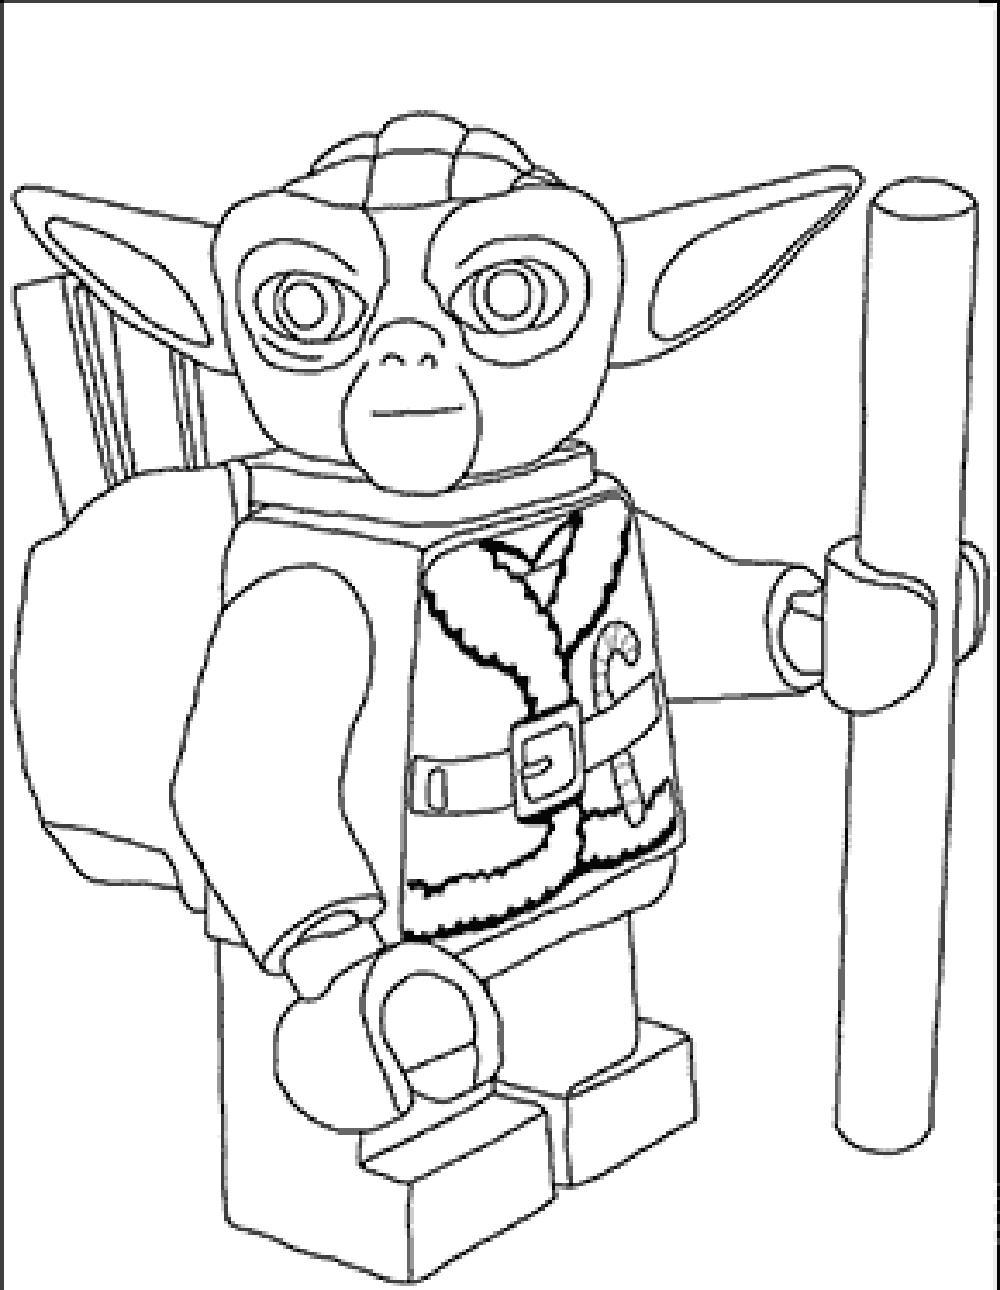 lego star wars pictures to color lego star wars coloring pages free printable lego star wars color lego star to pictures